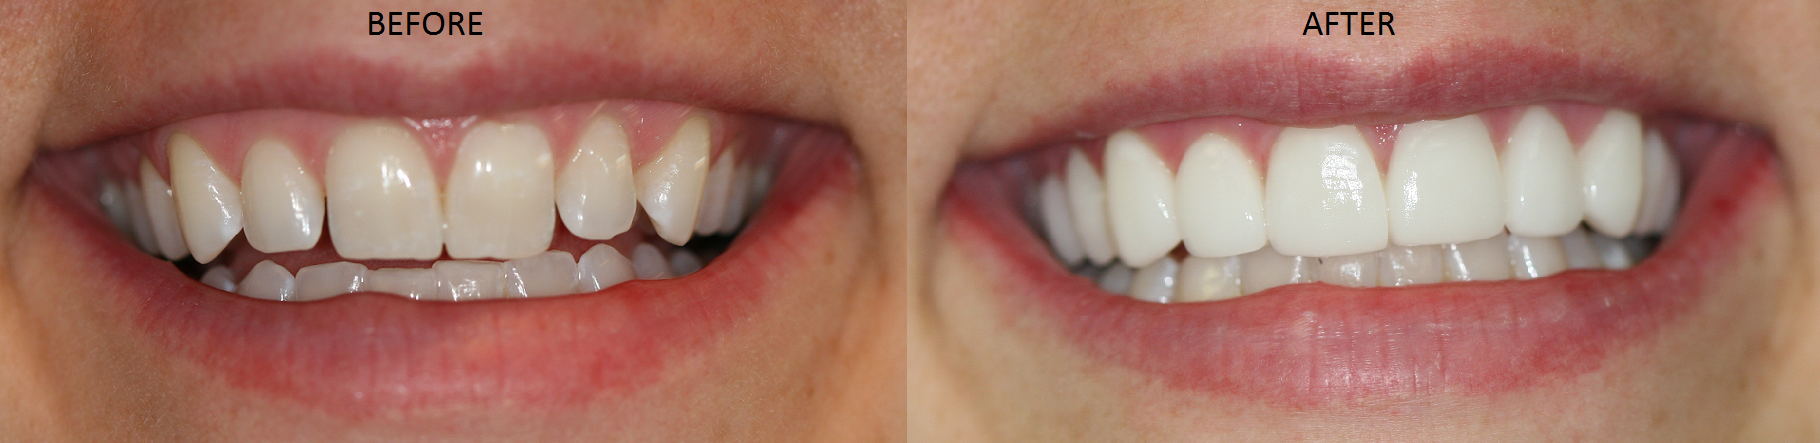 Dr Ann Soberays Patient Receives No Prep Porcelain Veneers And Crowns Are